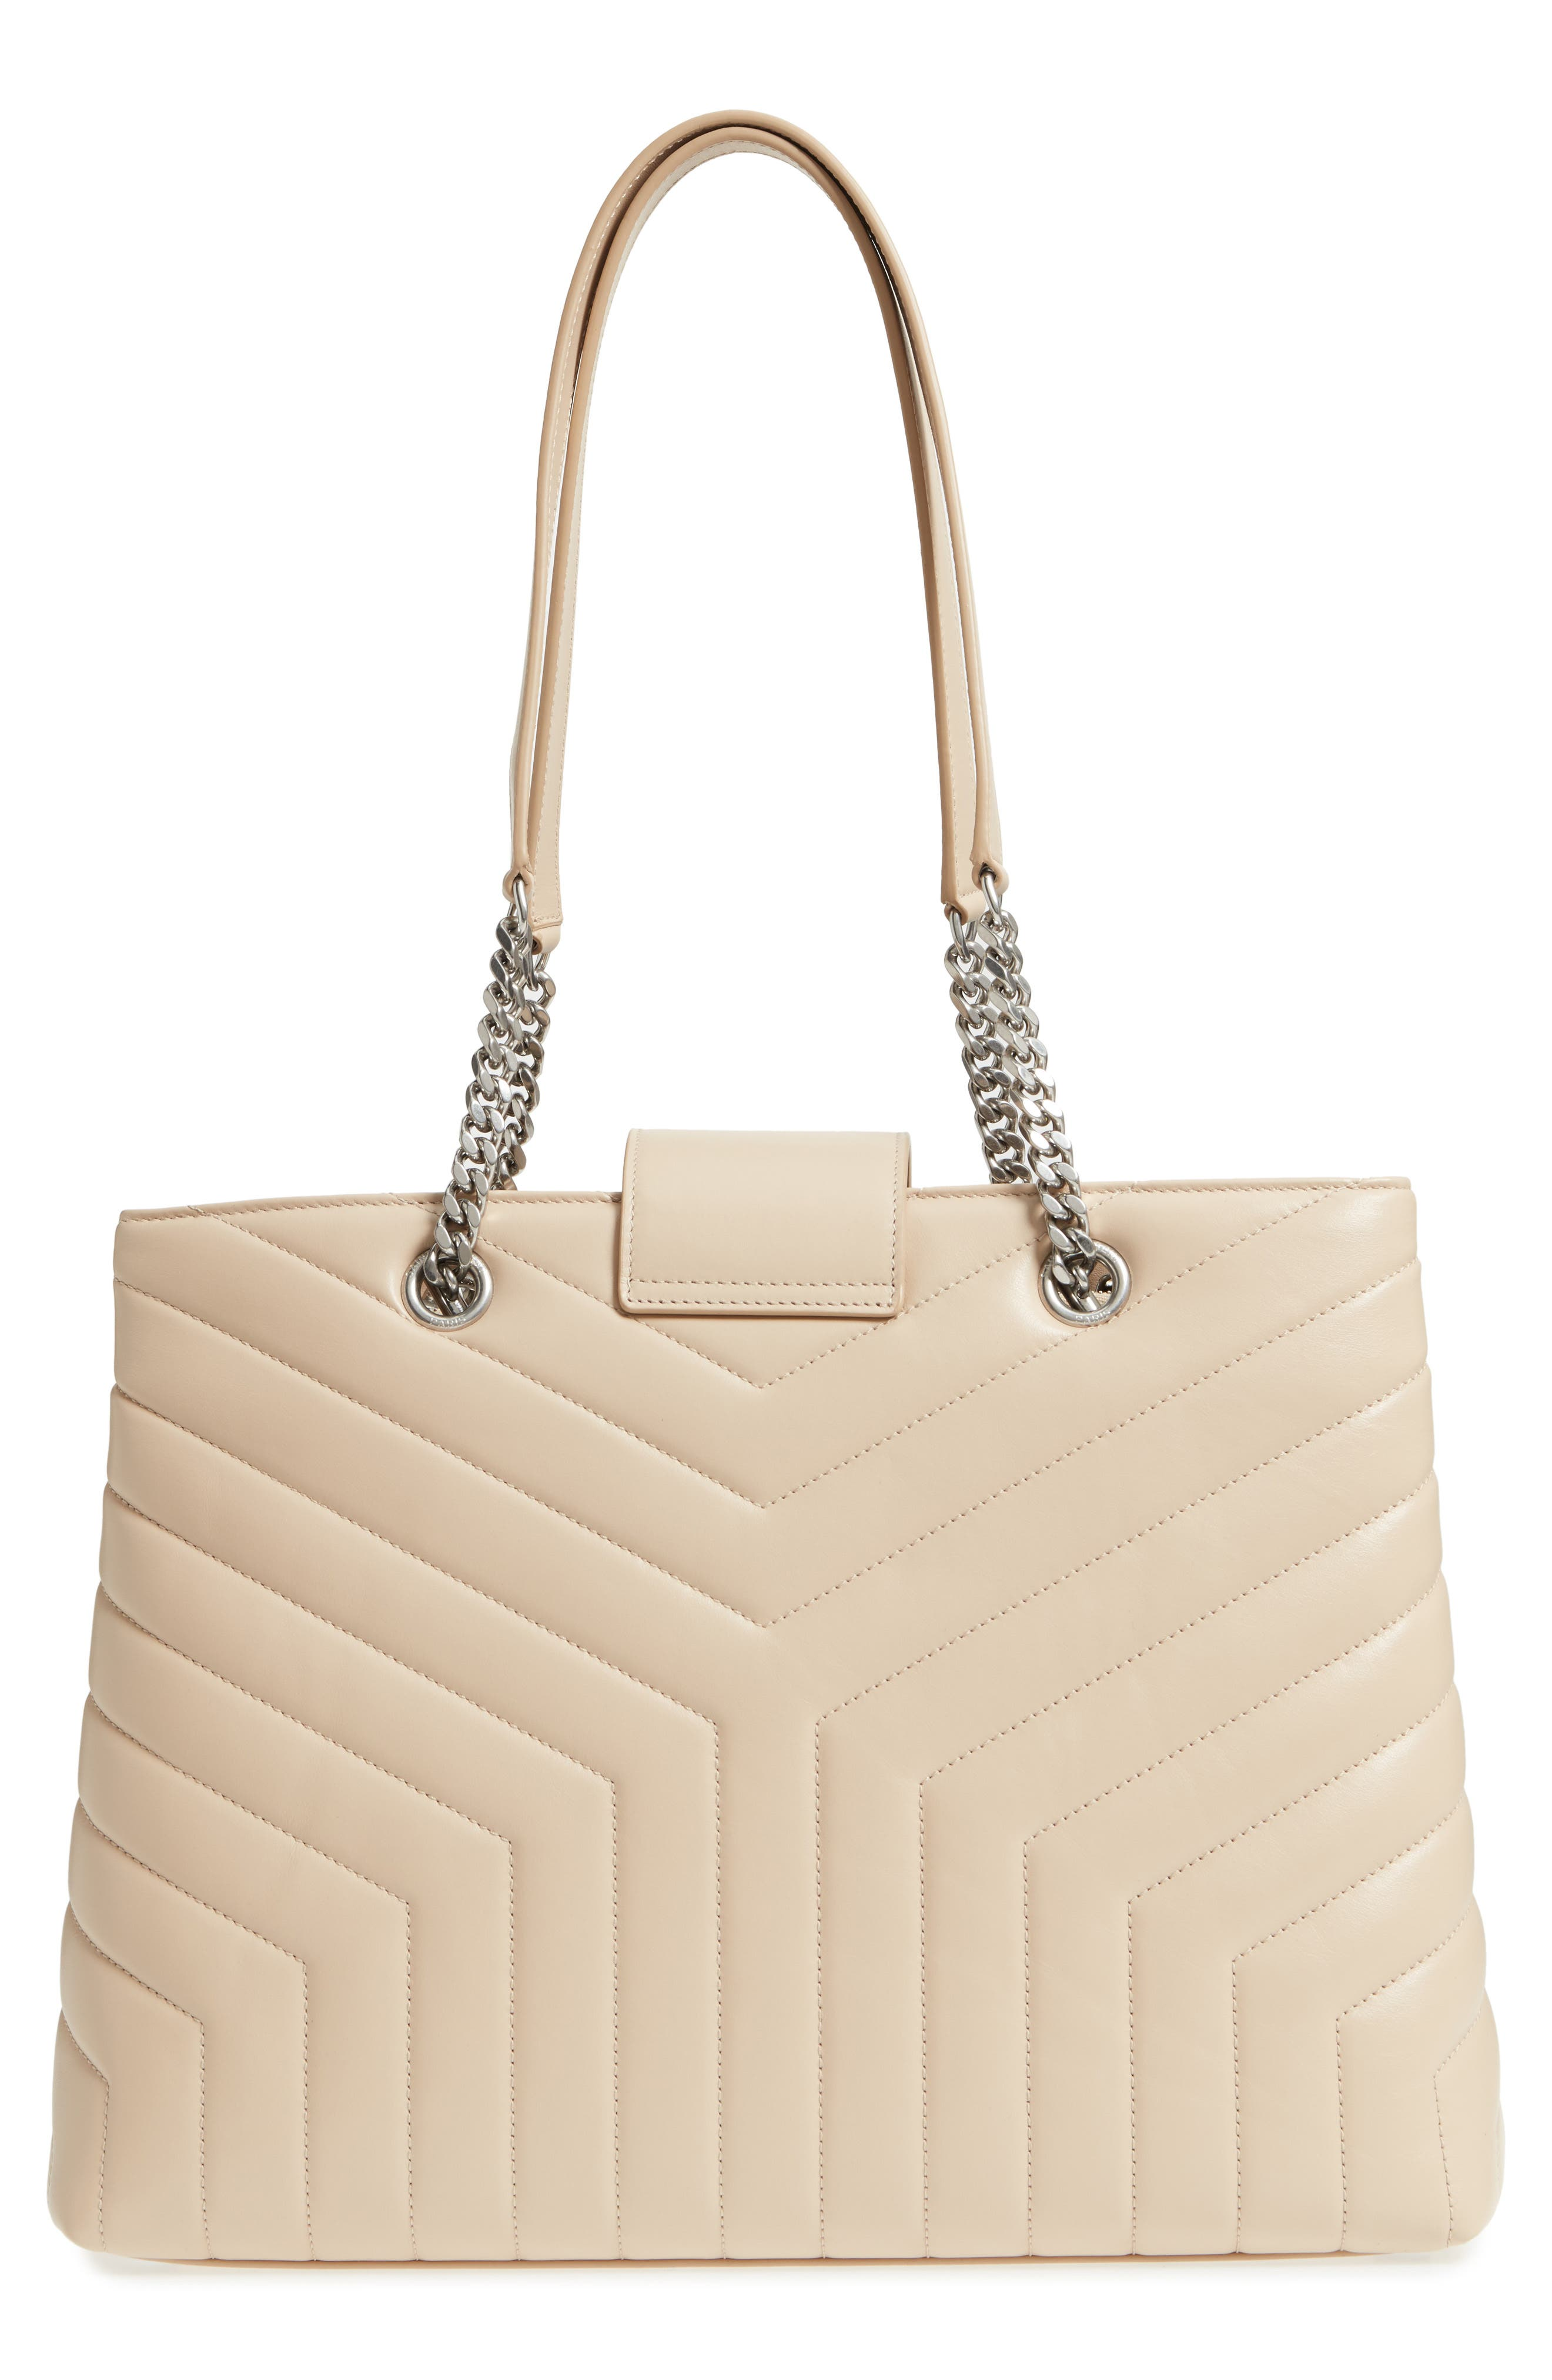 Large Loulou Matelassé Leather Shopper,                             Alternate thumbnail 3, color,                             Nude Powder/ Nude Powder